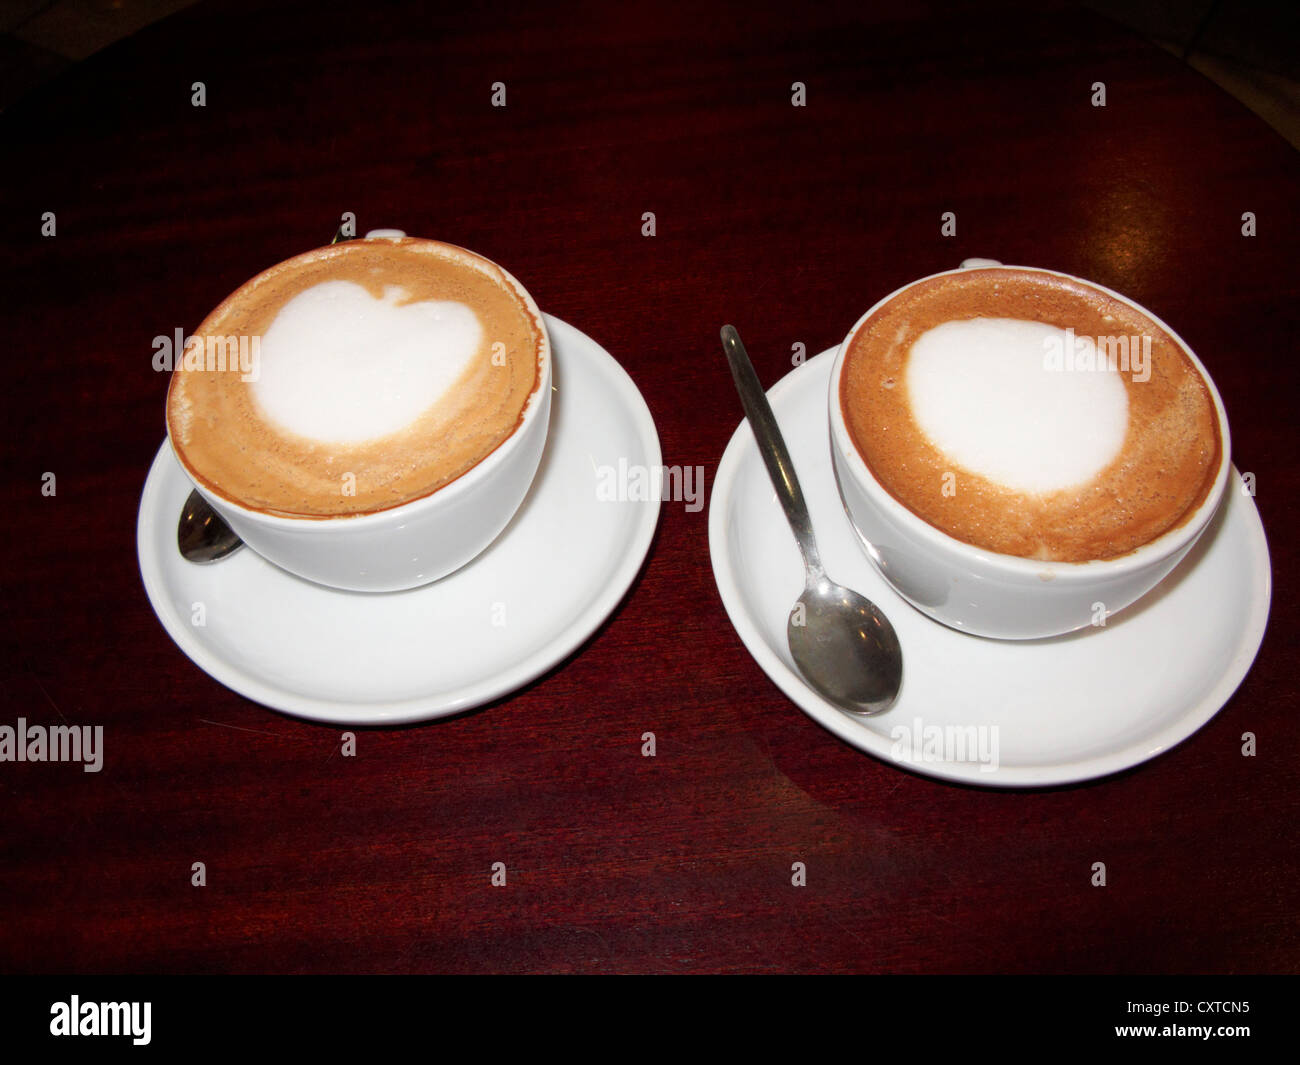 two cups of mocha coffee on a table in a coffee shop in the uk united kingdom - Stock Image